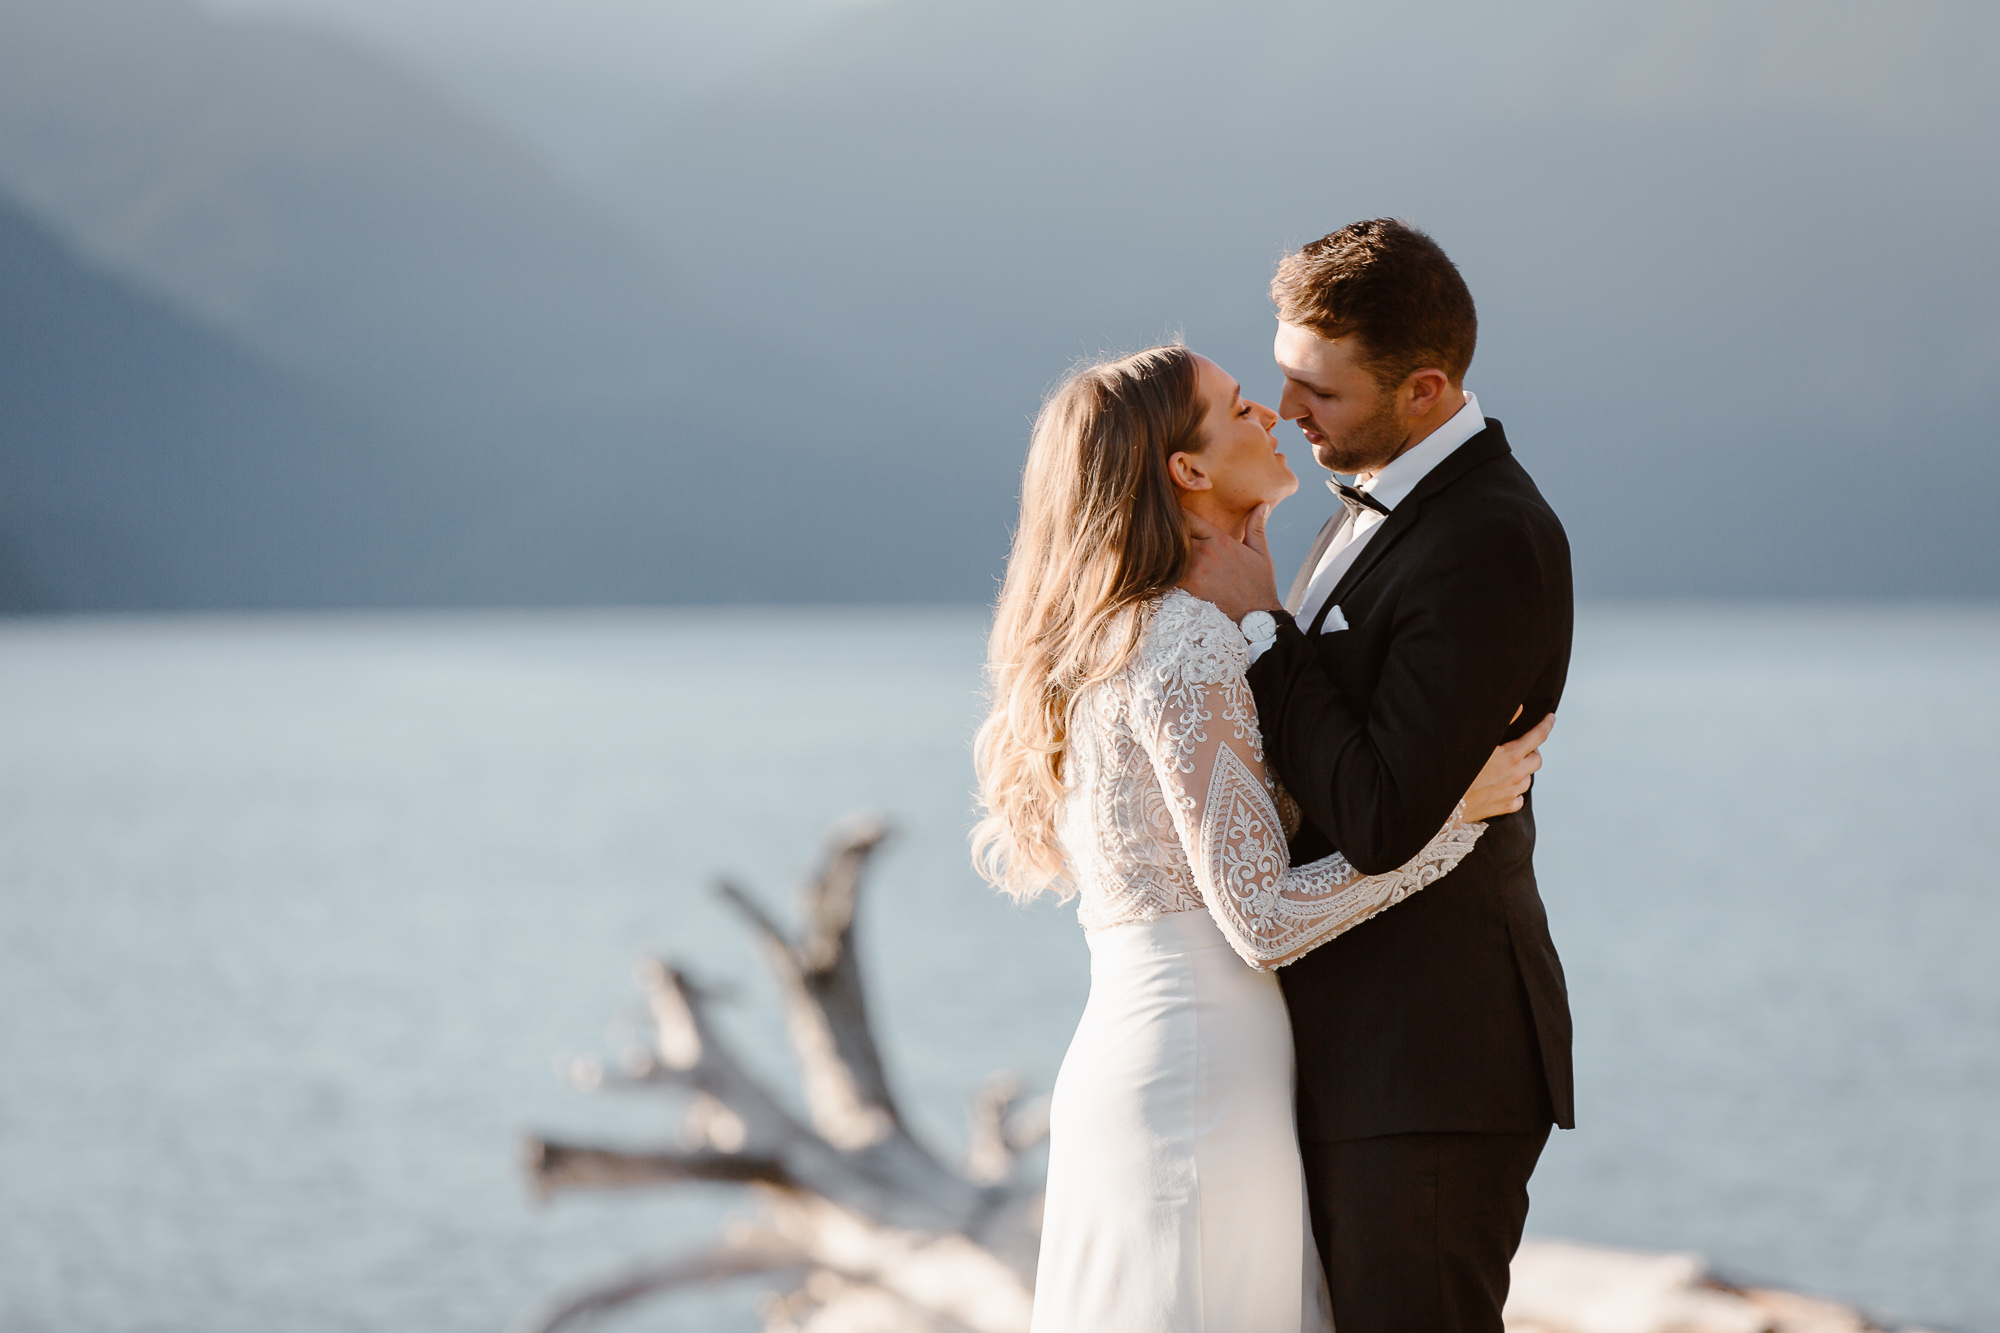 Intimate portrait of bride and groom made during Squamish outdoor post-wedding session